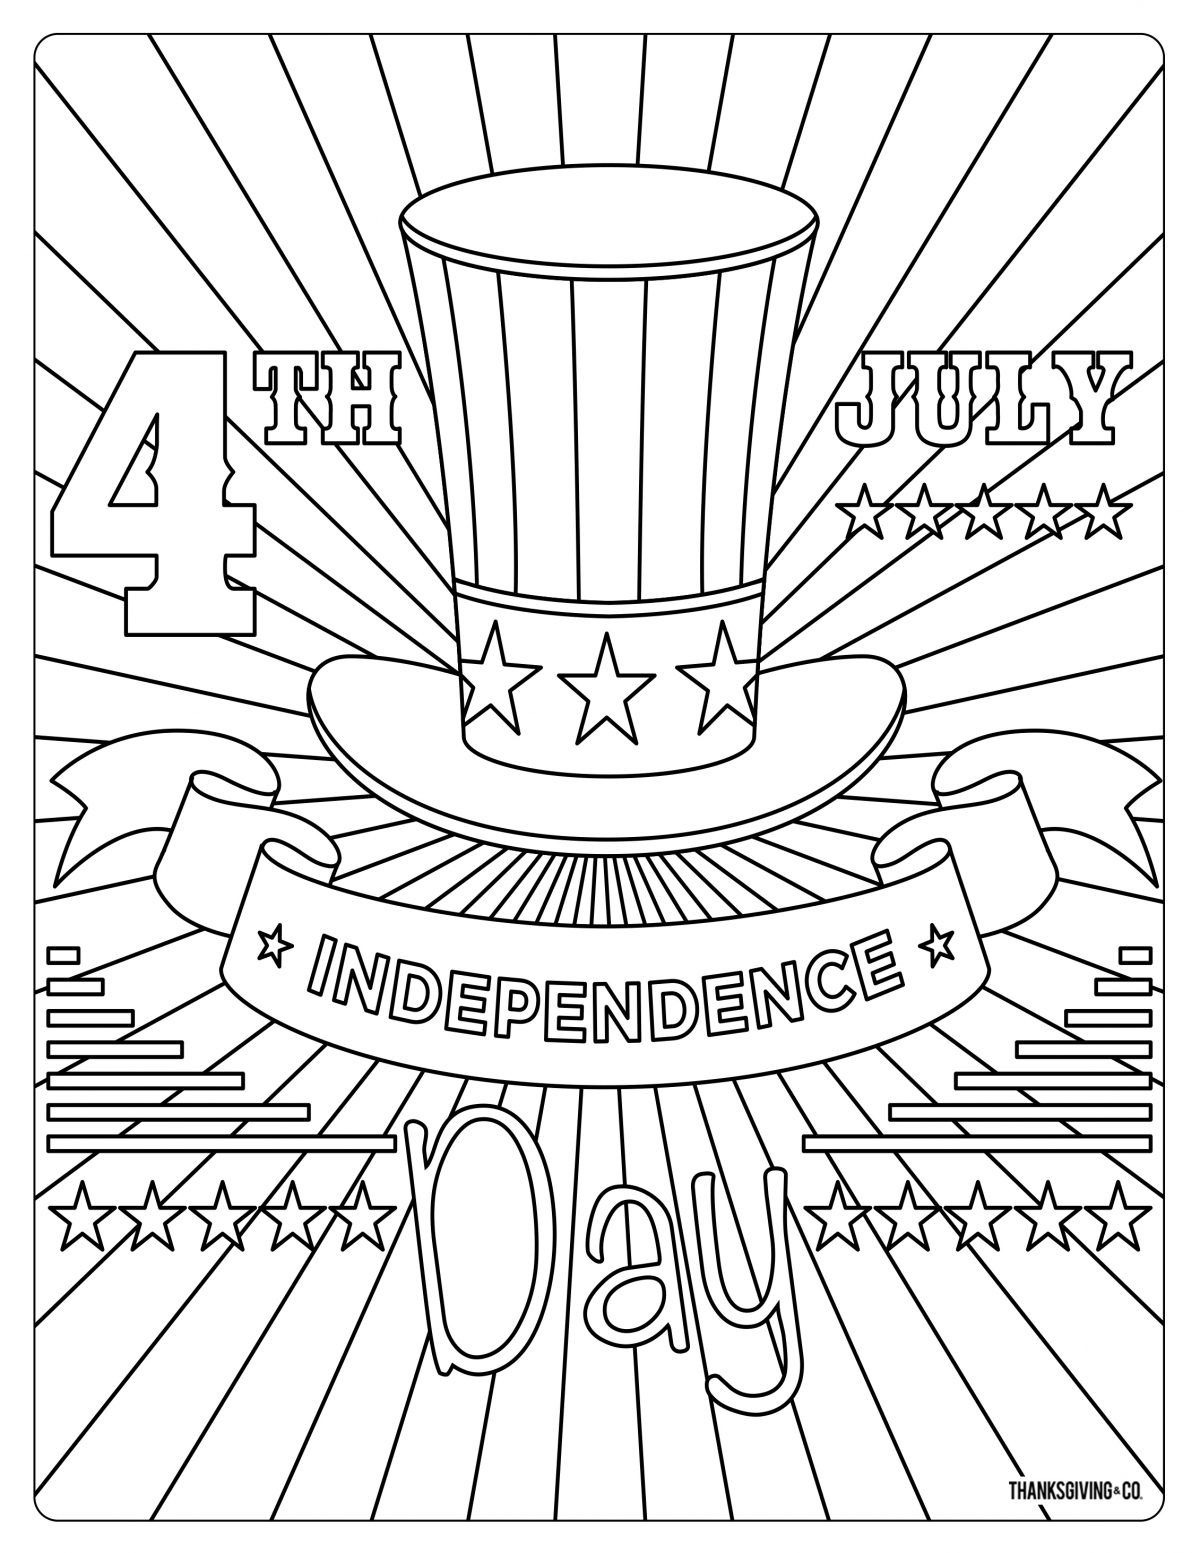 5 Free Fourth Of July Coloring Pages Coloring Pages Love Coloring Pages July Colors